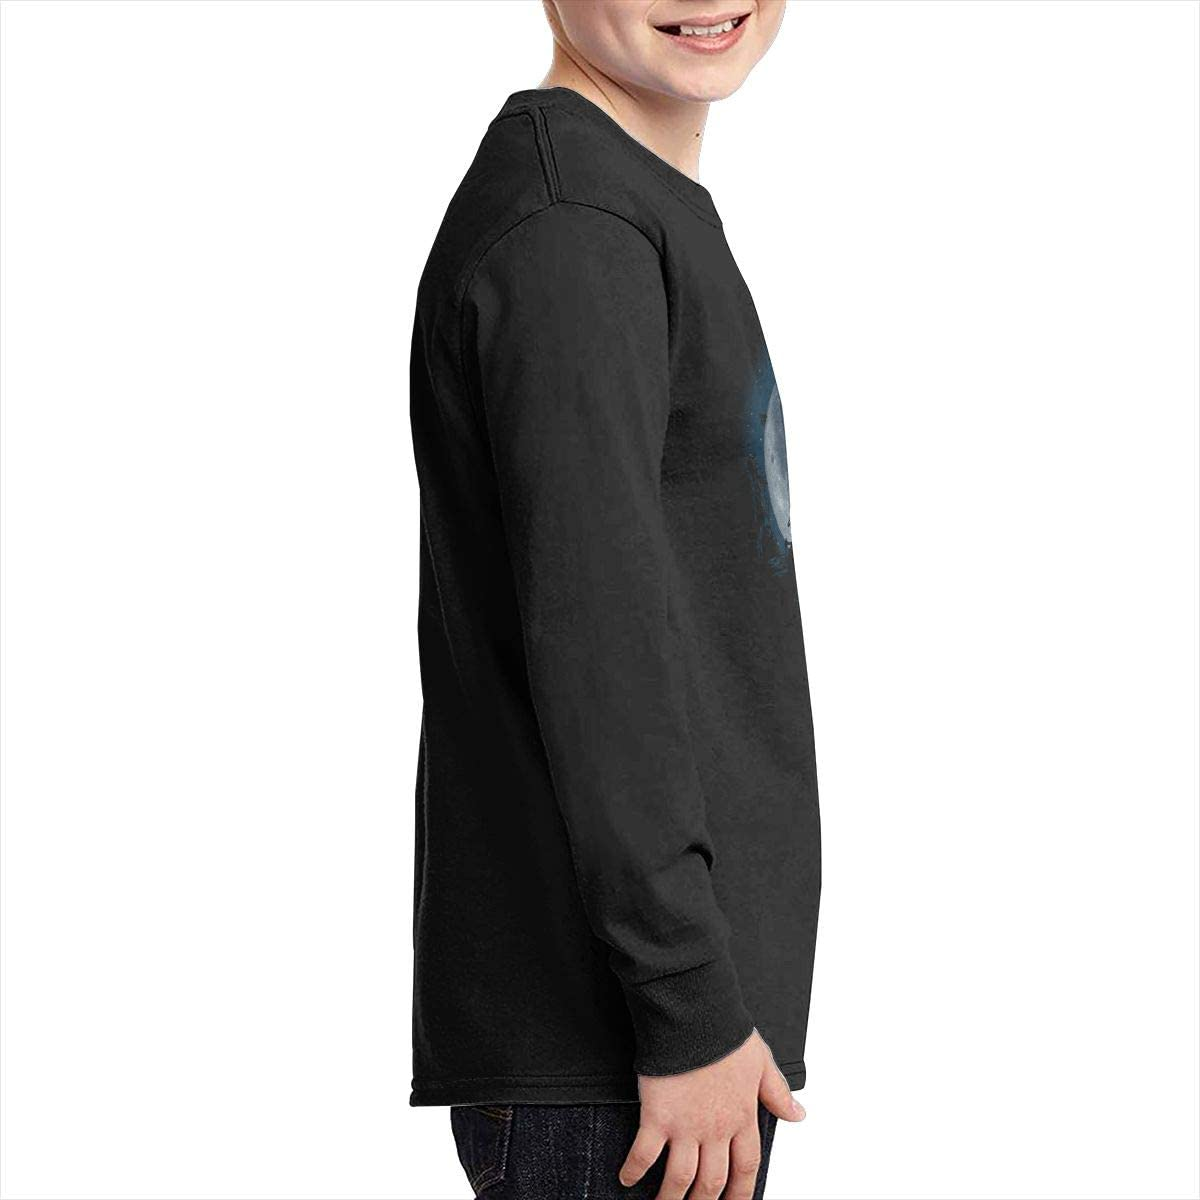 Hakuna Hallows Boys Long Sleeve T-Shirt,Fashion Youth Tops